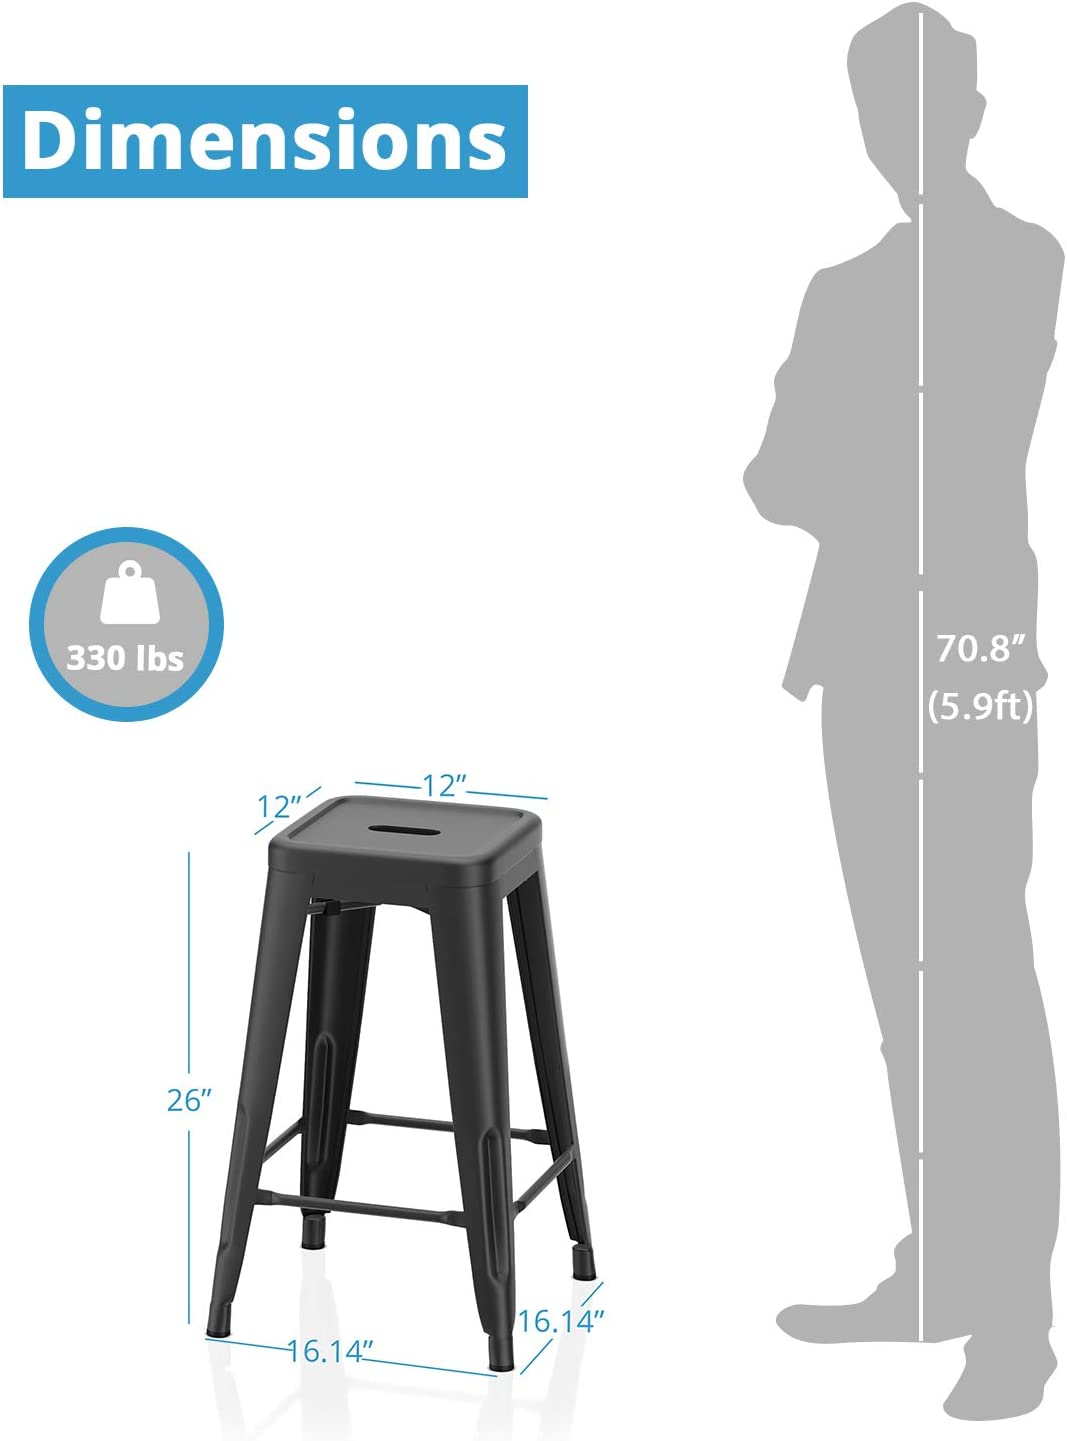 VIPEK 26 Inch Barstools Counter Height Metal Bar Stools 26 Indoor Outdoor Use Industrial Counter Stools Backless Stackable Stools Kitchen Dinning Bar Chairs Gloss Black Set of 4